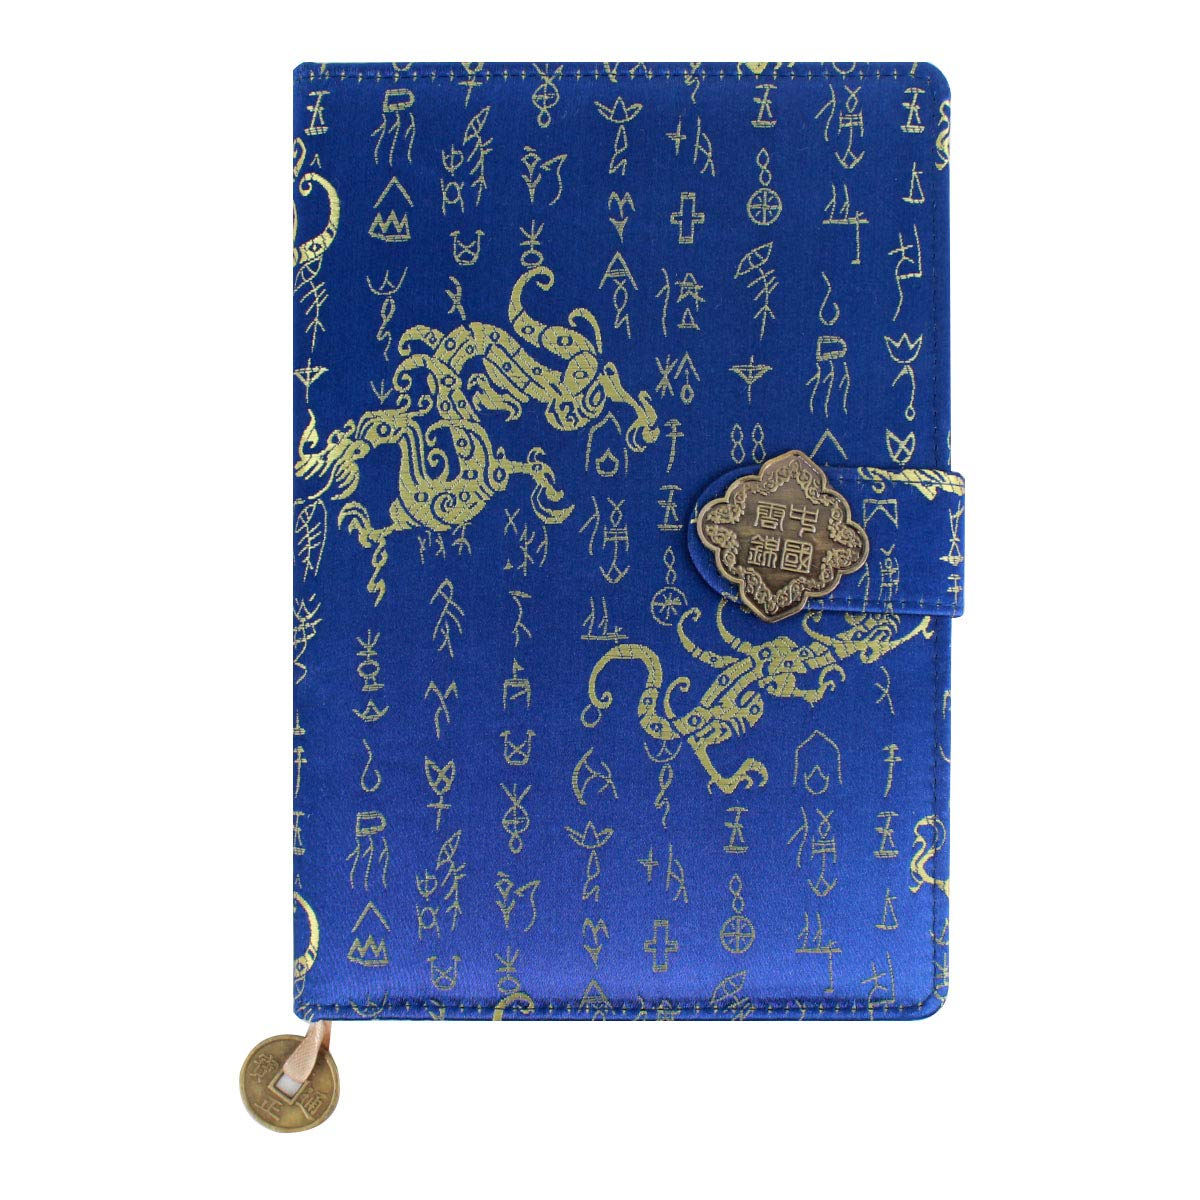 Kennedy Exquisite Notebook Chinese Yun Brocade Notebook Silk Hardcover Diary Journal Sketchbook Travel and Thought Blank Book-Oracle Bone